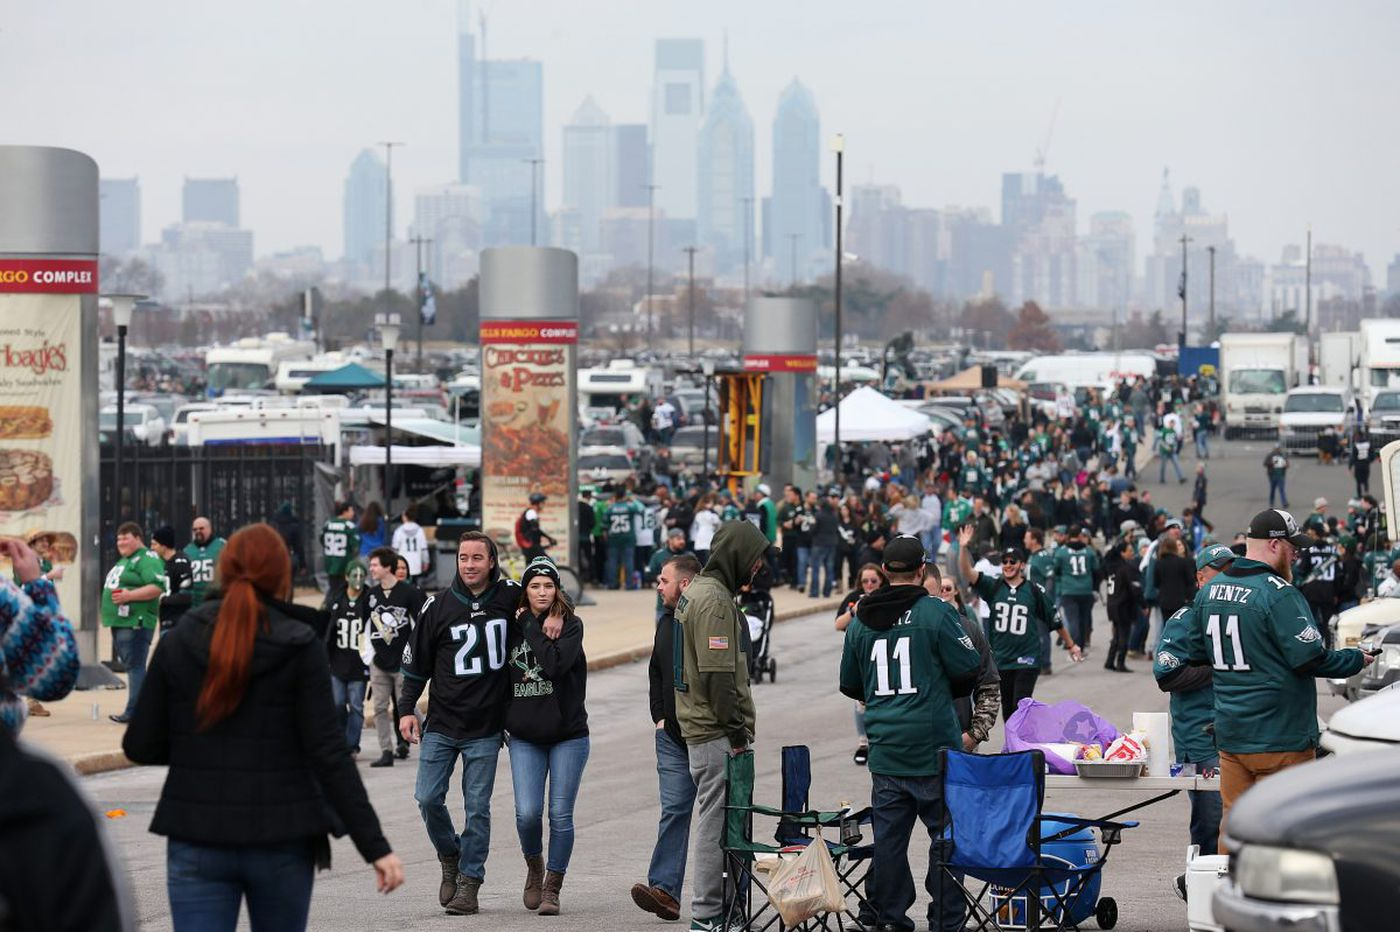 The Philly- and Boston-themed food, beer and more getting banned ahead of the Super Bowl